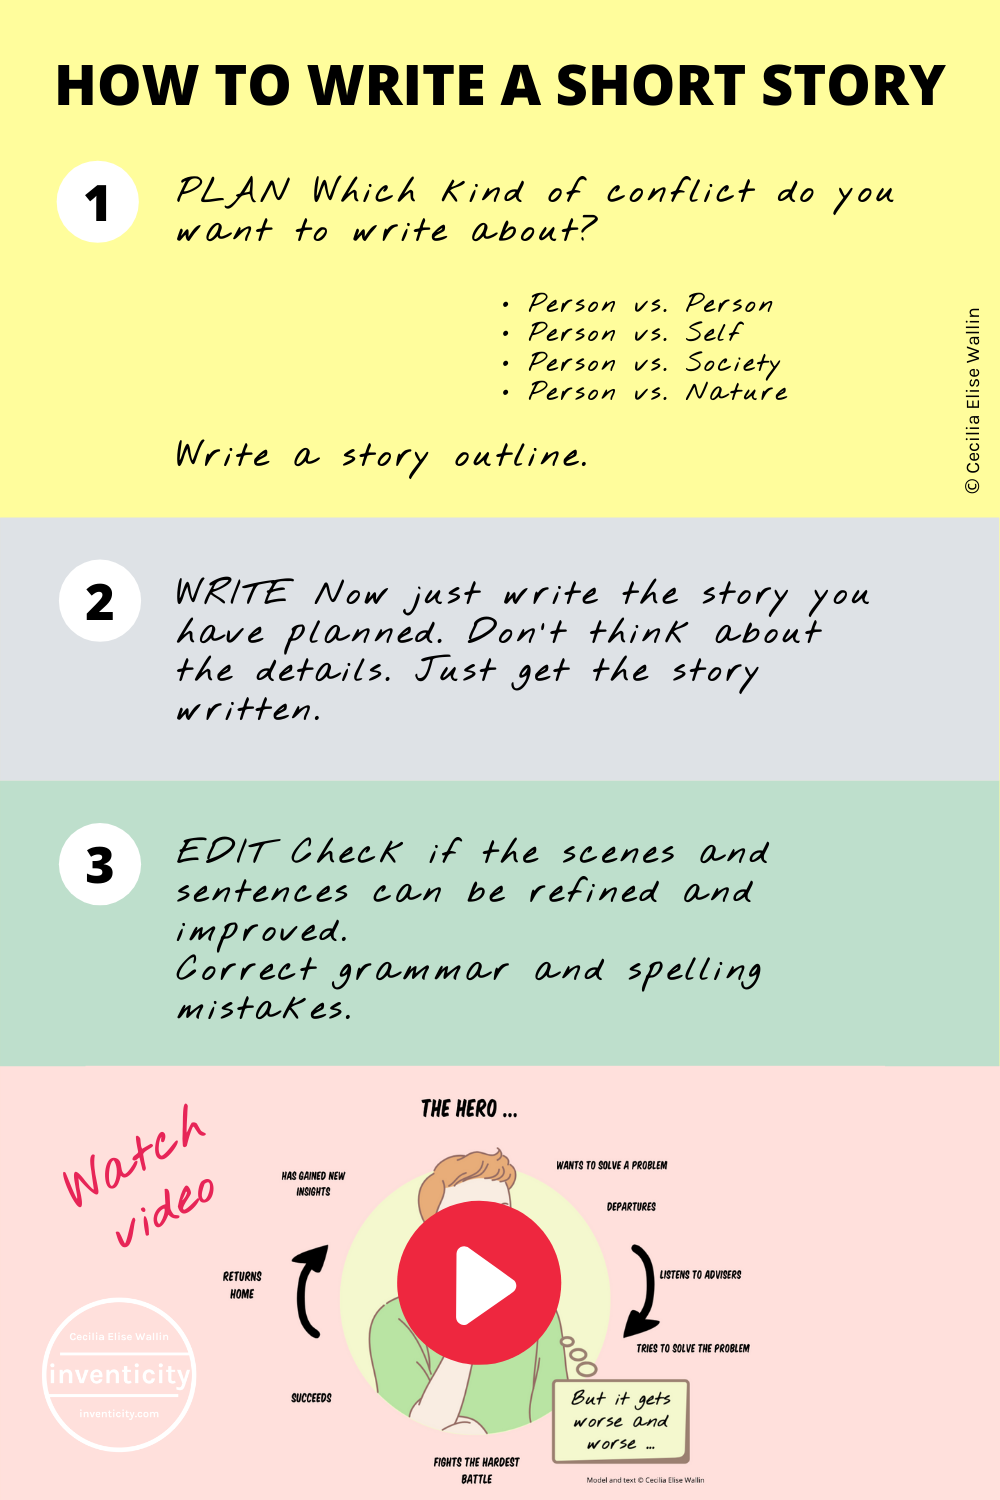 How To Write a Short Story  Step by Step  Blog help, Blog tips